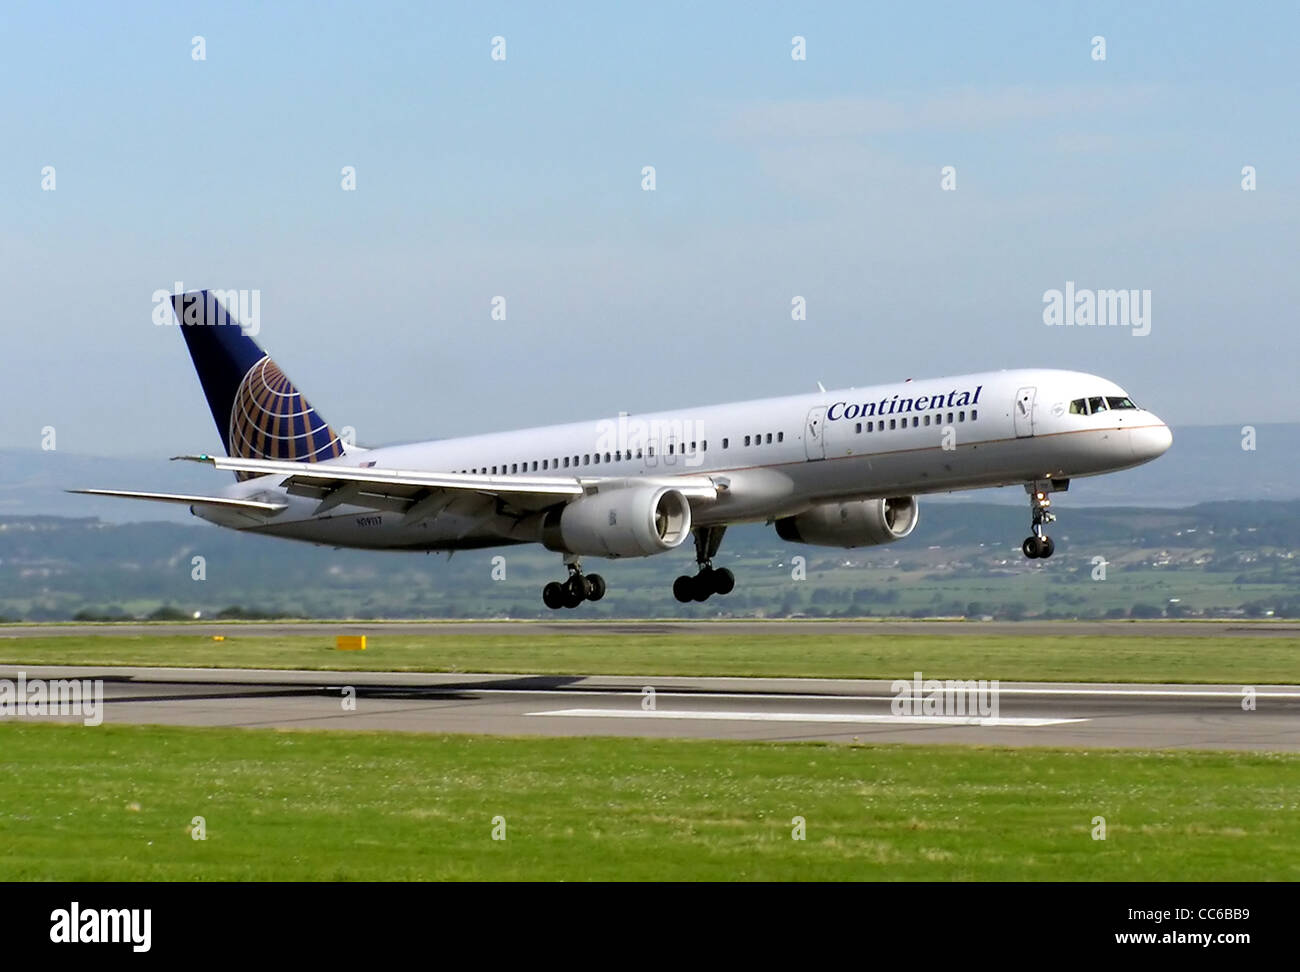 Continental Airlines Boeing 757-200 (US registration N19117, built 1996) lands from New York at Bristol International - Stock Image